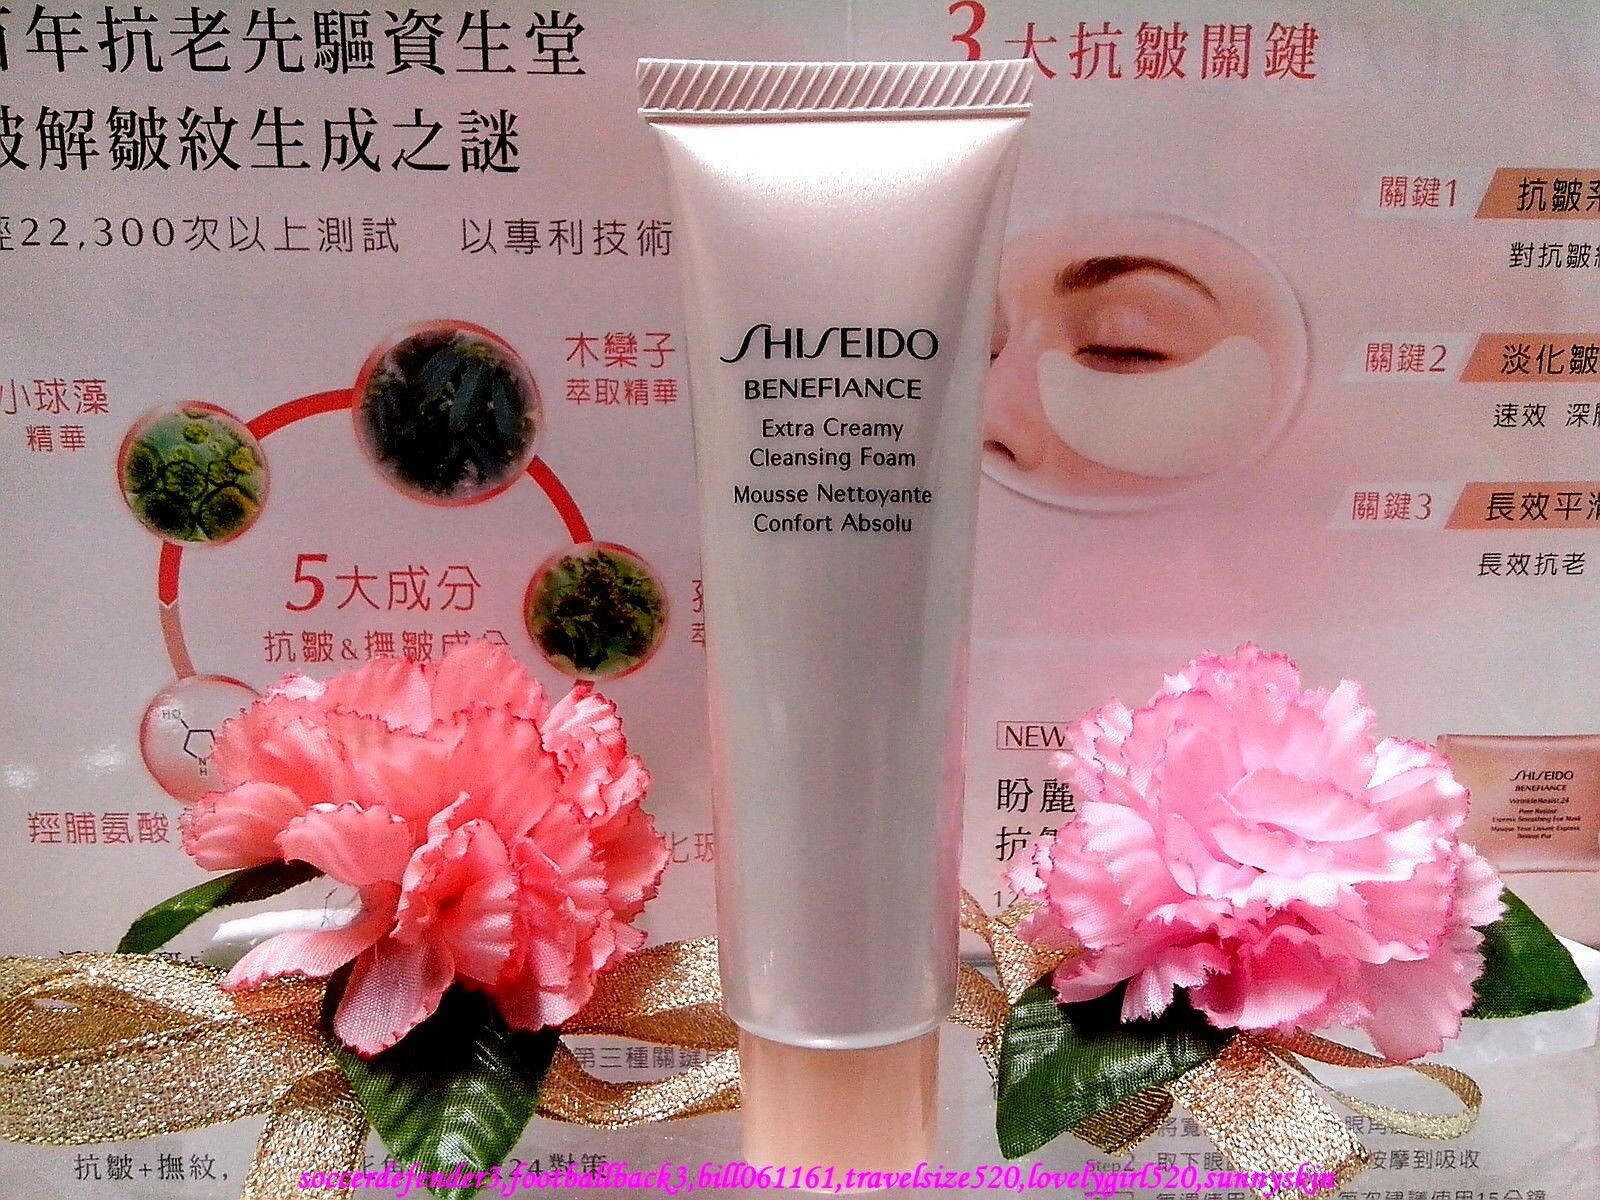 Benefiance Extra Creamy Cleansing Foam by Shiseido #9